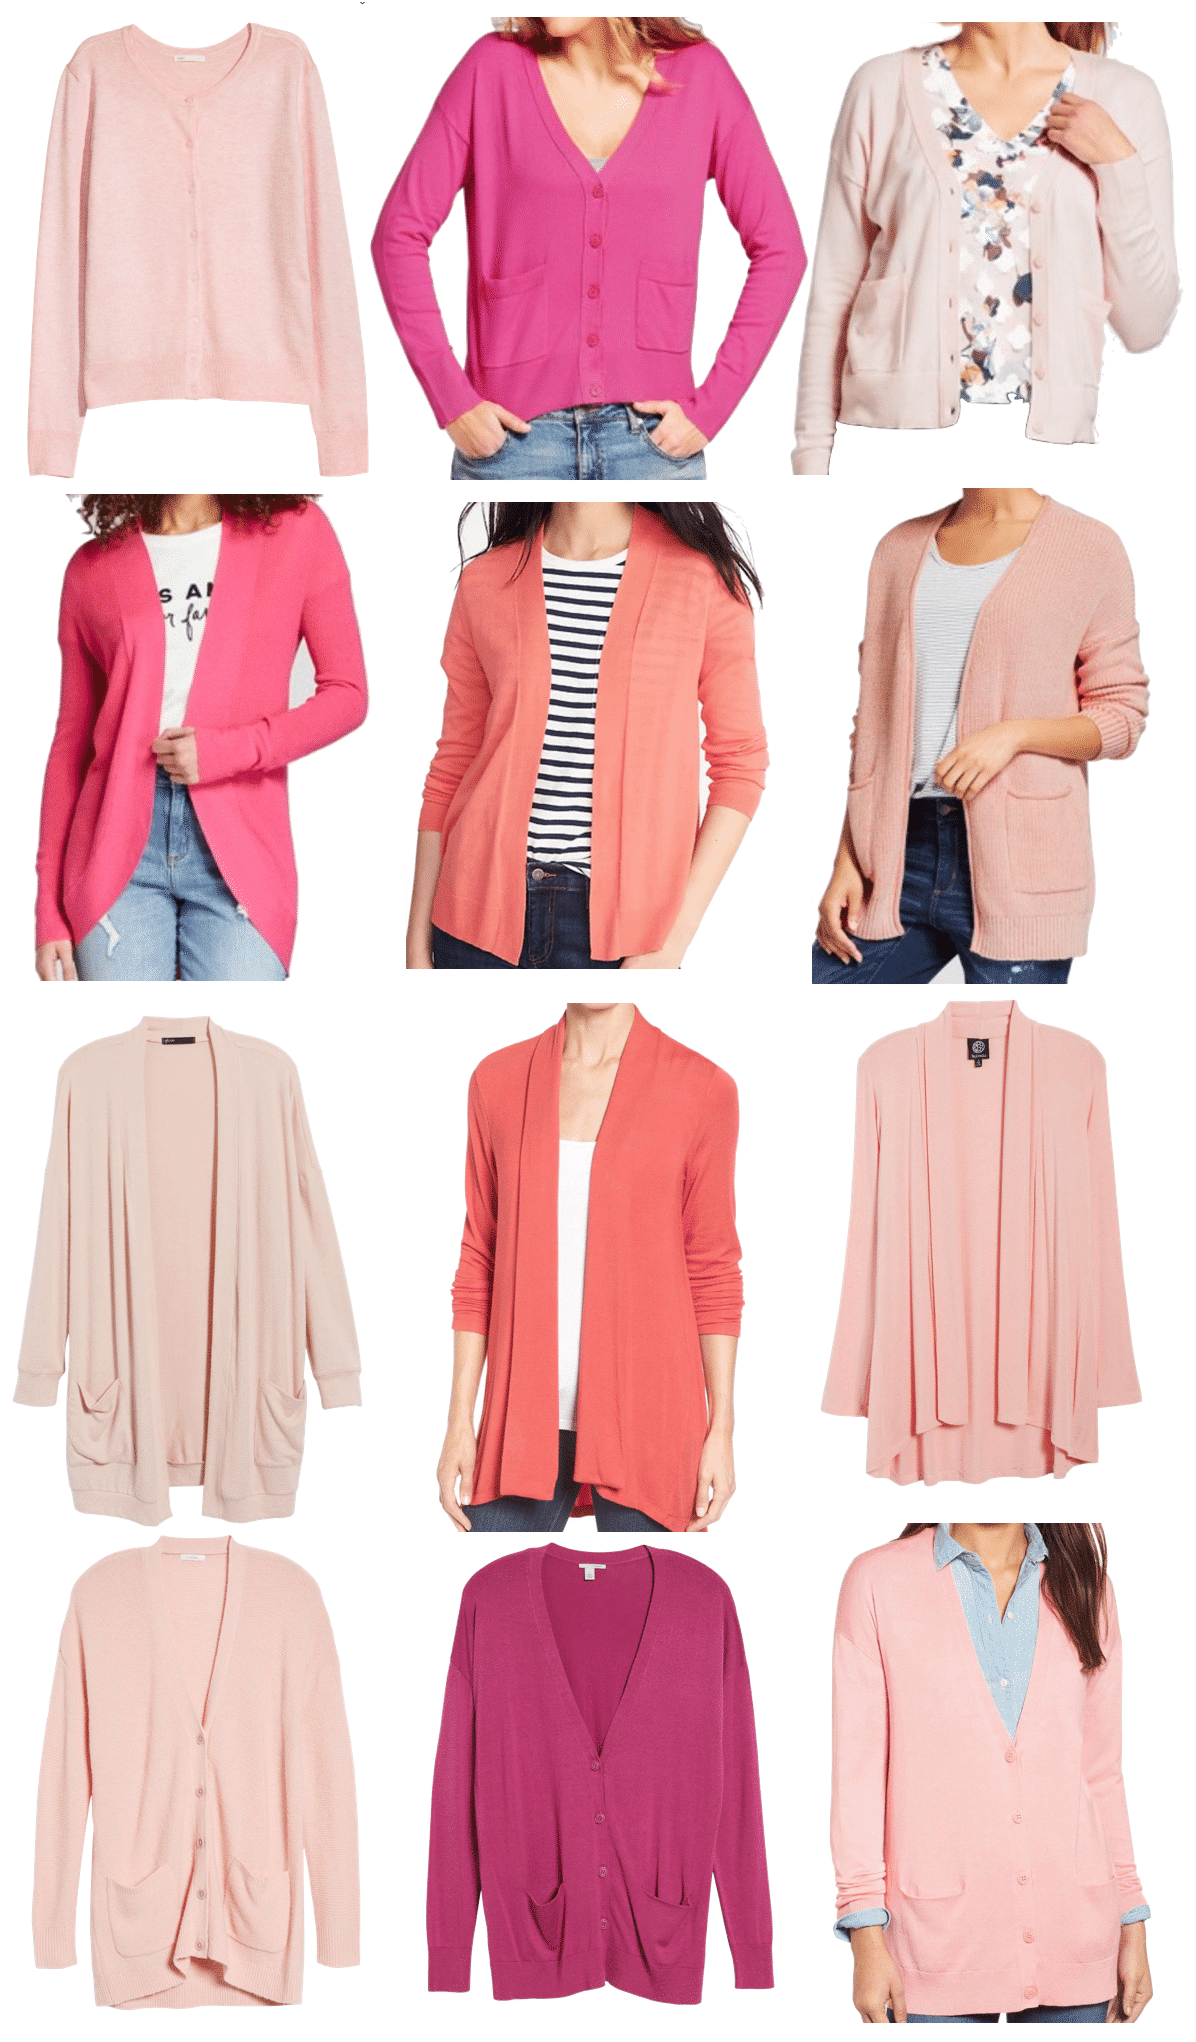 Pin, Blush, and Coral Cardigans for Spring